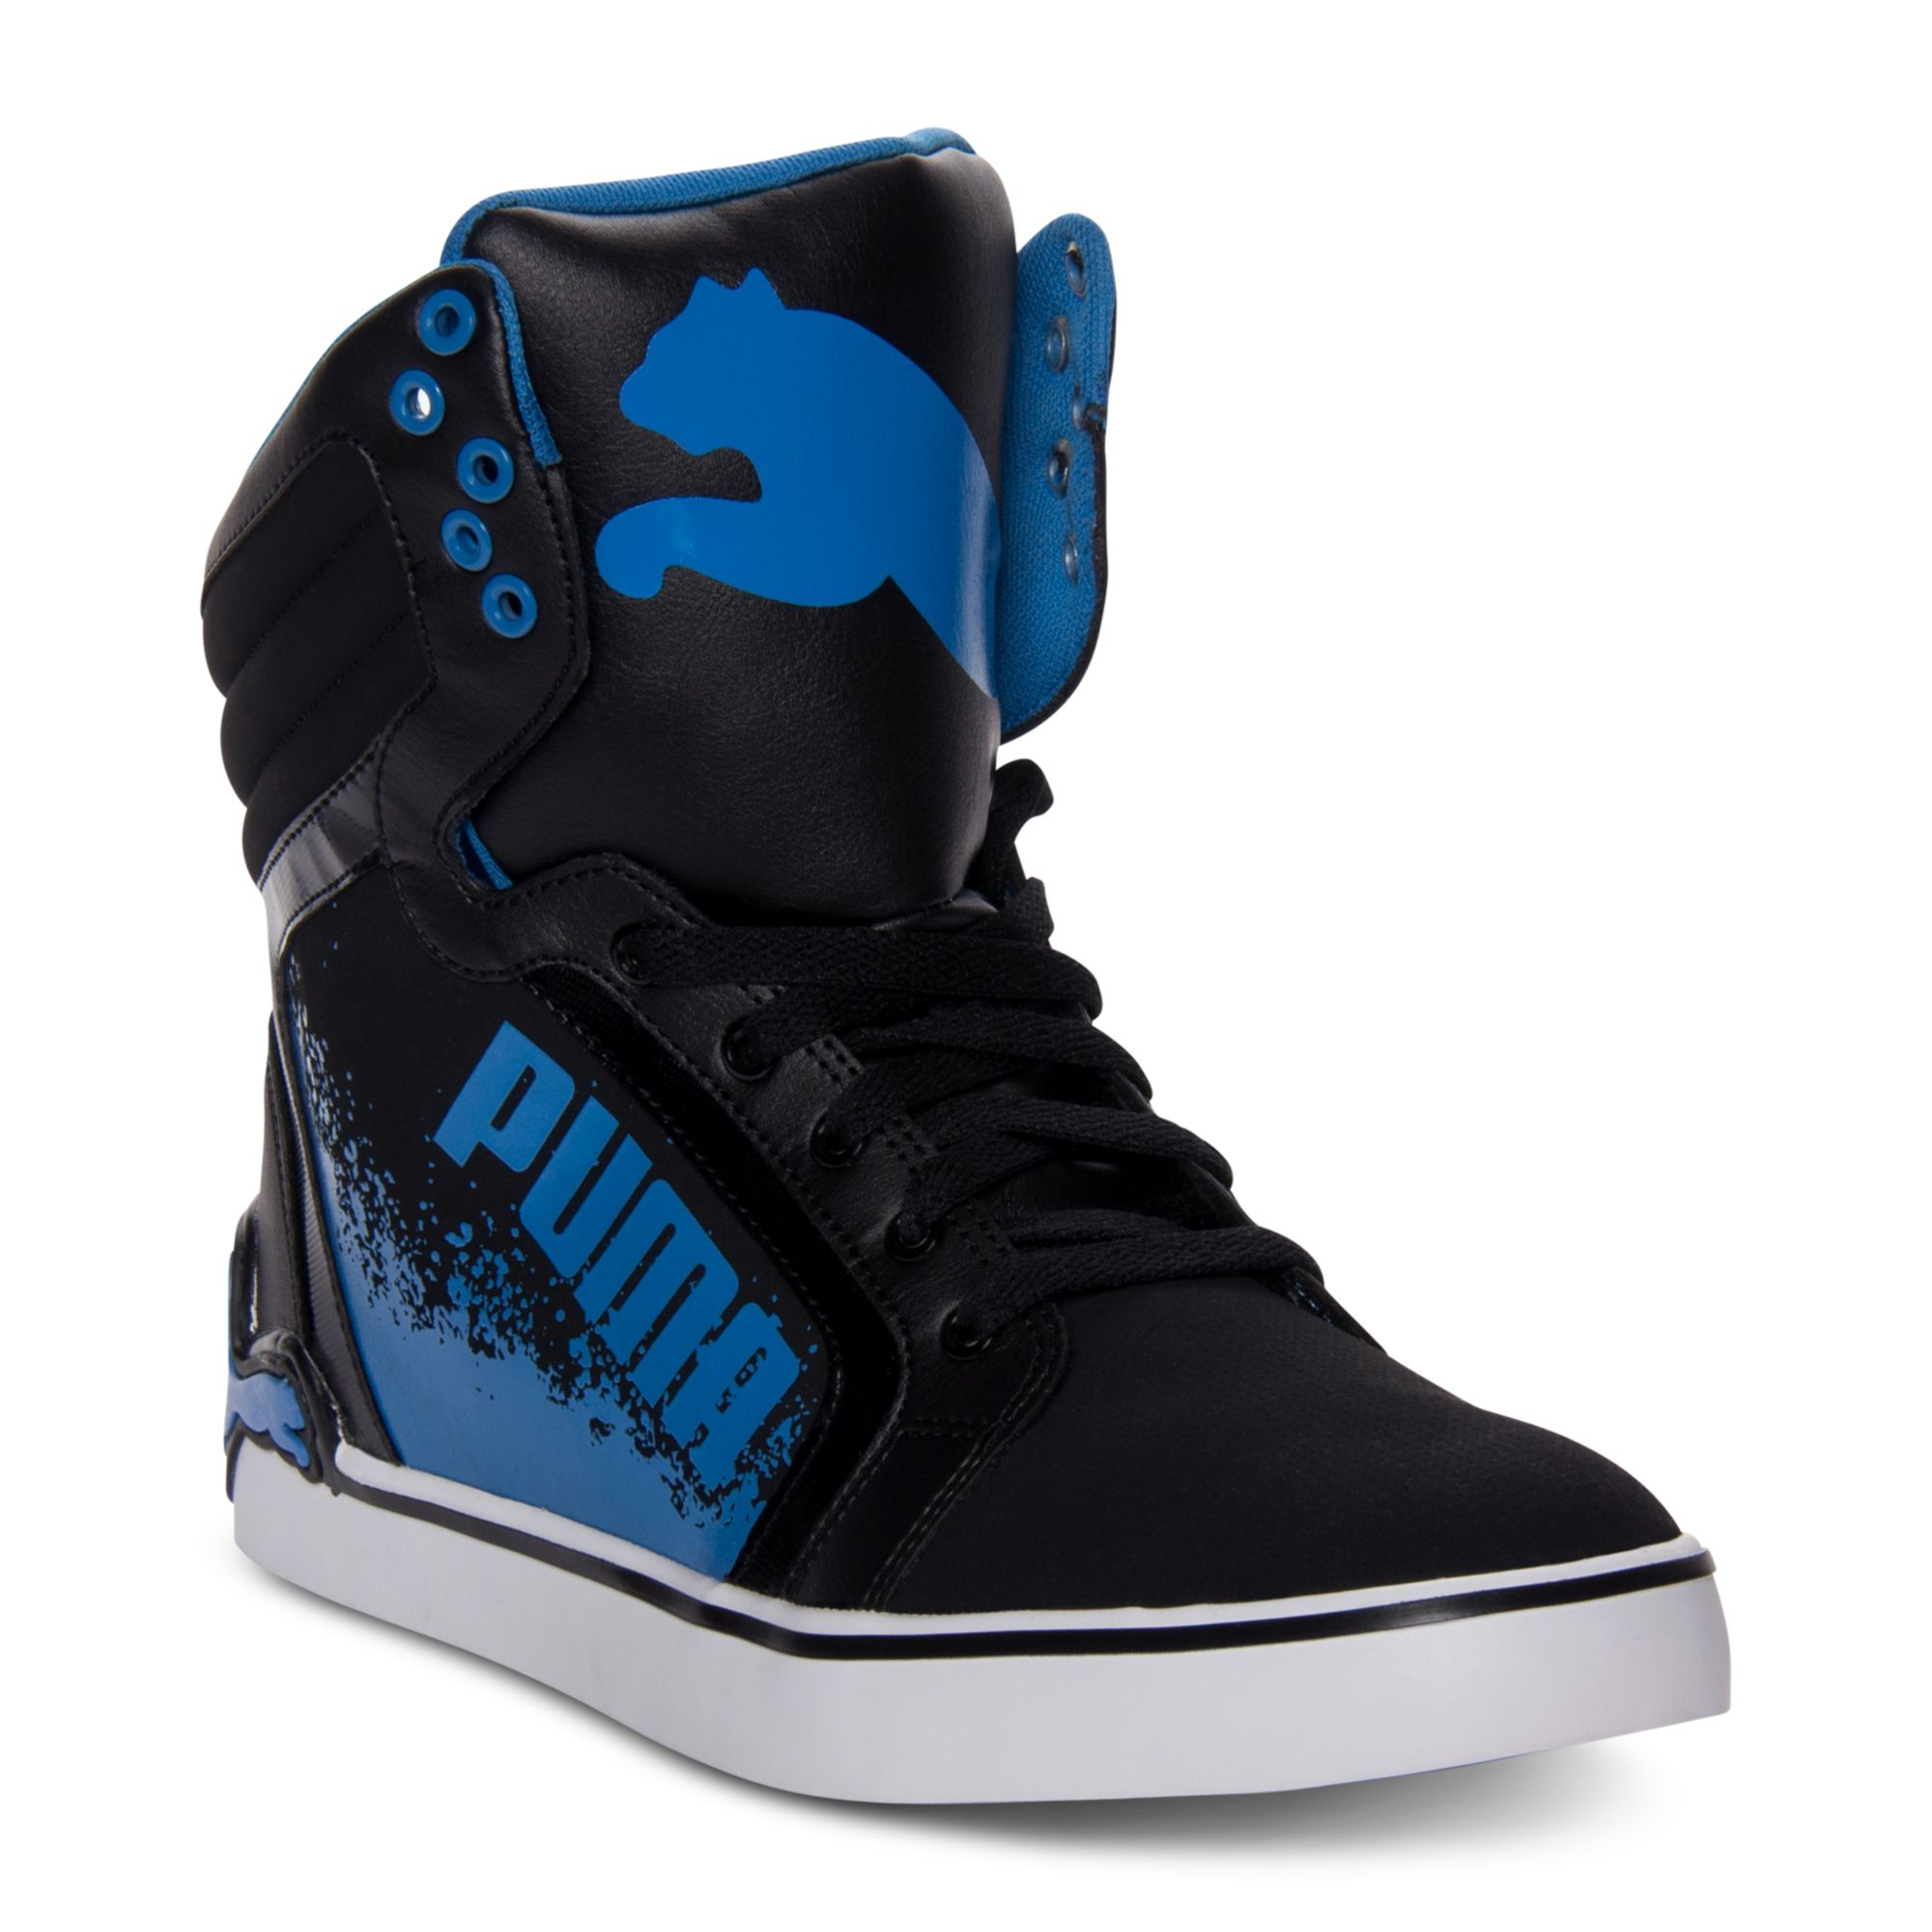 PUMA Lc Special Casual Sneakers In Black/White/Blue (Blue